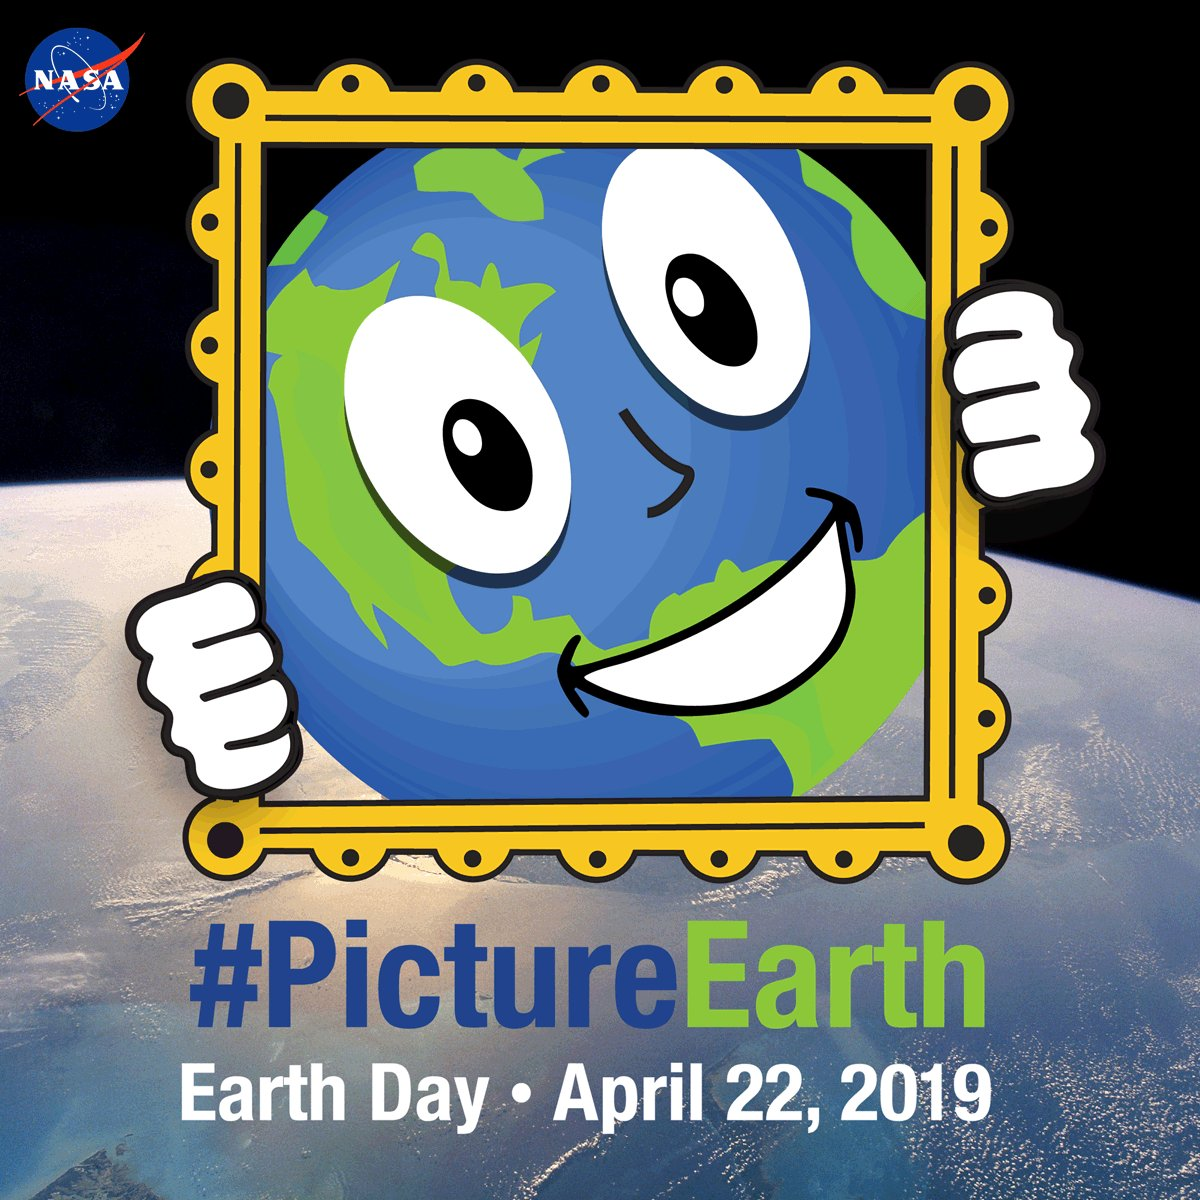 Four days until #EarthDay! Share with us your best photo of the details of your home planet. 🌴🐦🌼🐢🌦️🐠 We want to see images from around the world all day Monday, April 22. #PictureEarth